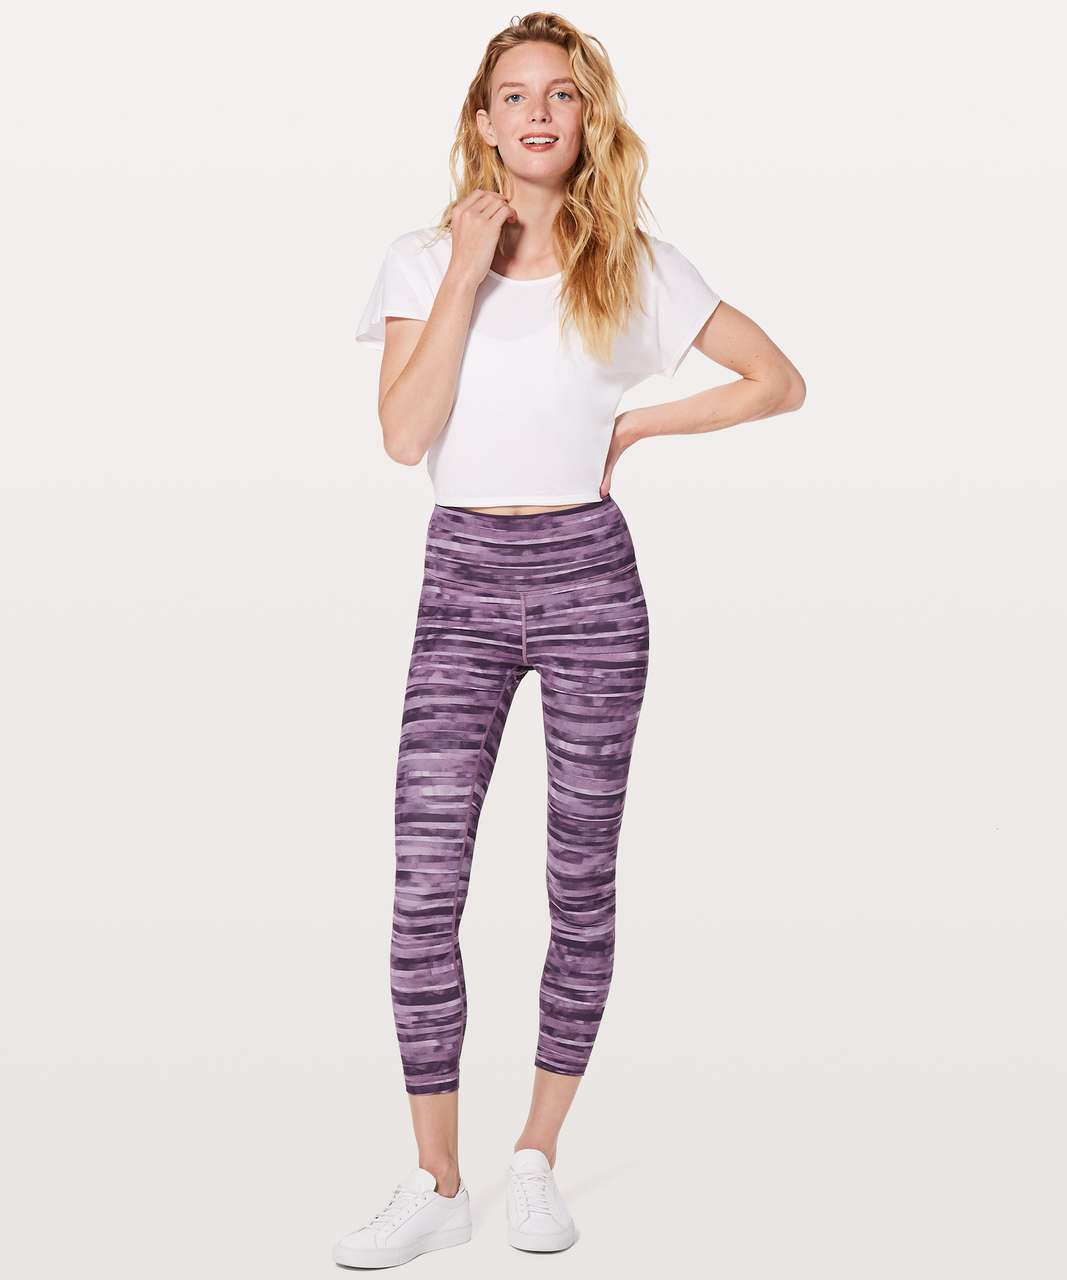 "Lululemon Wunder Under Hi-Rise 7/8 Tight *25"" - Shadowed Smoked Mullberry"